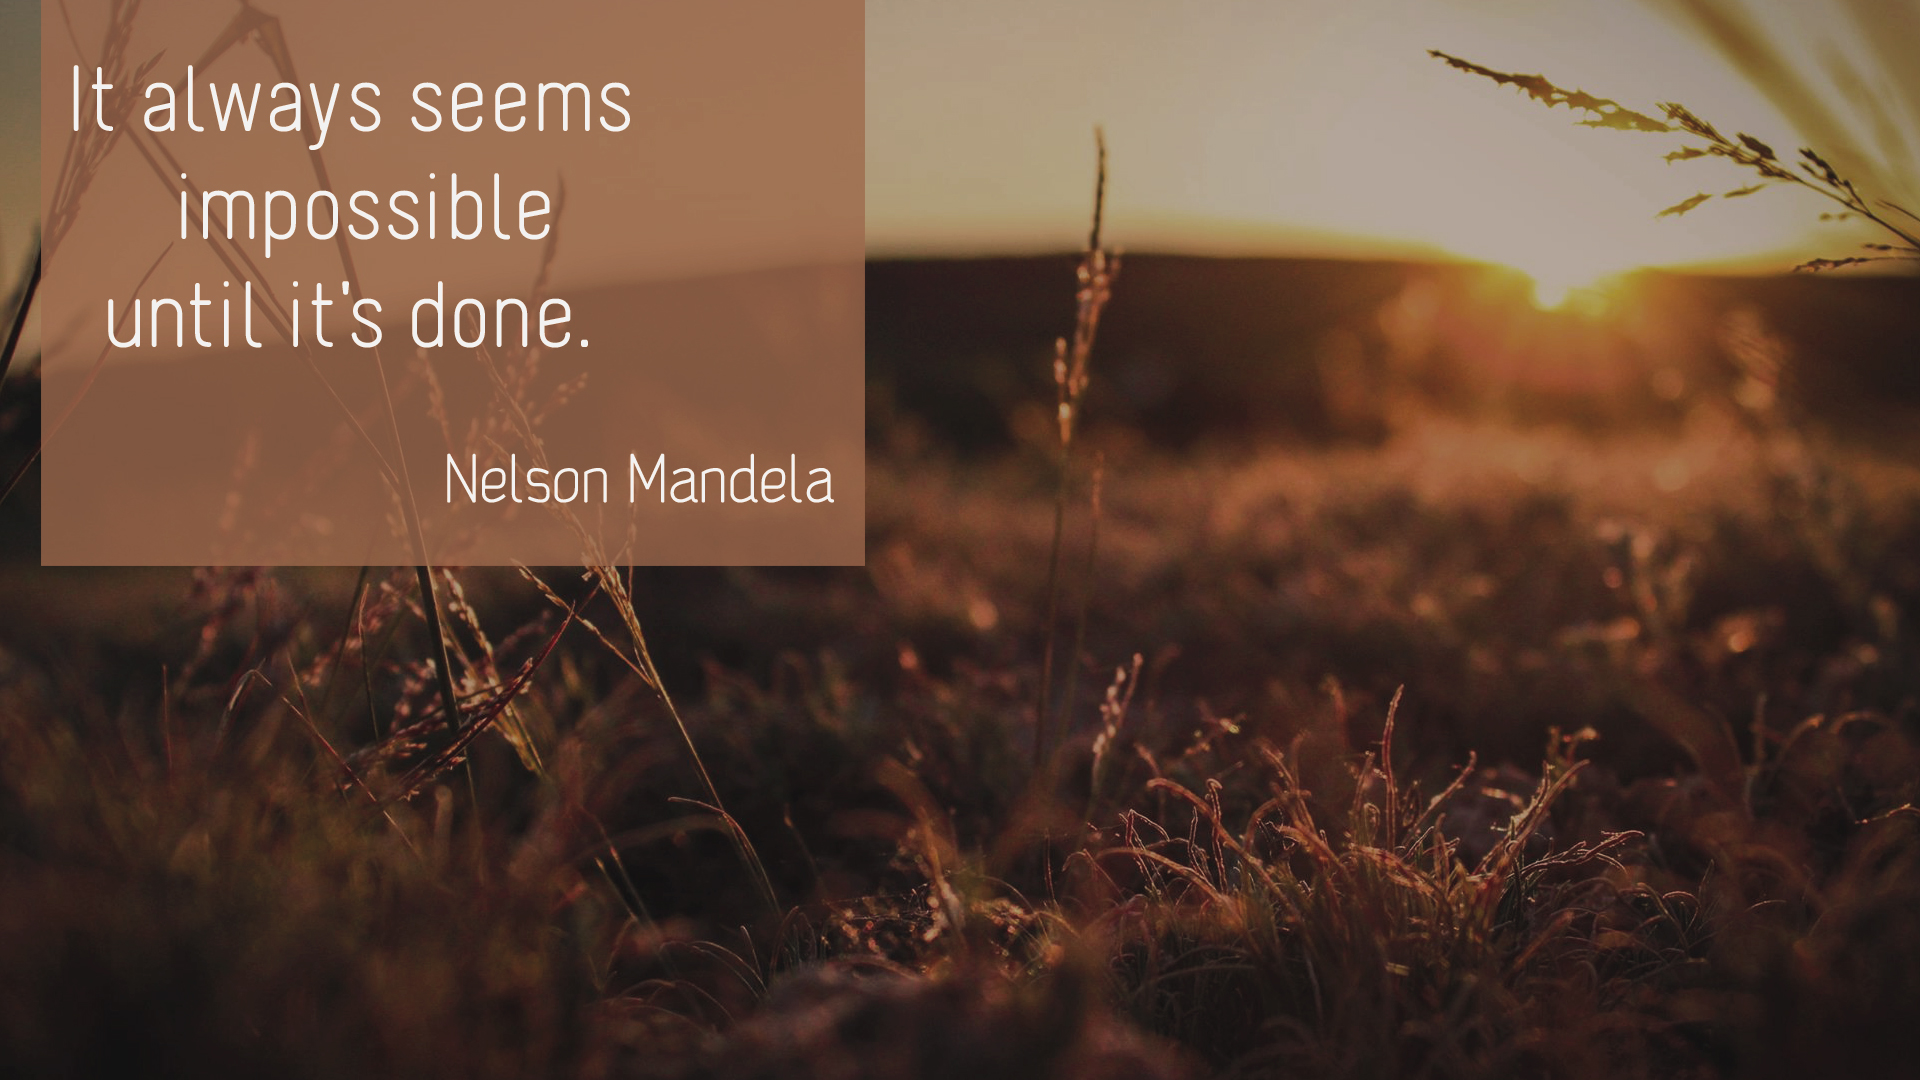 Nelson Mandela – The impossible